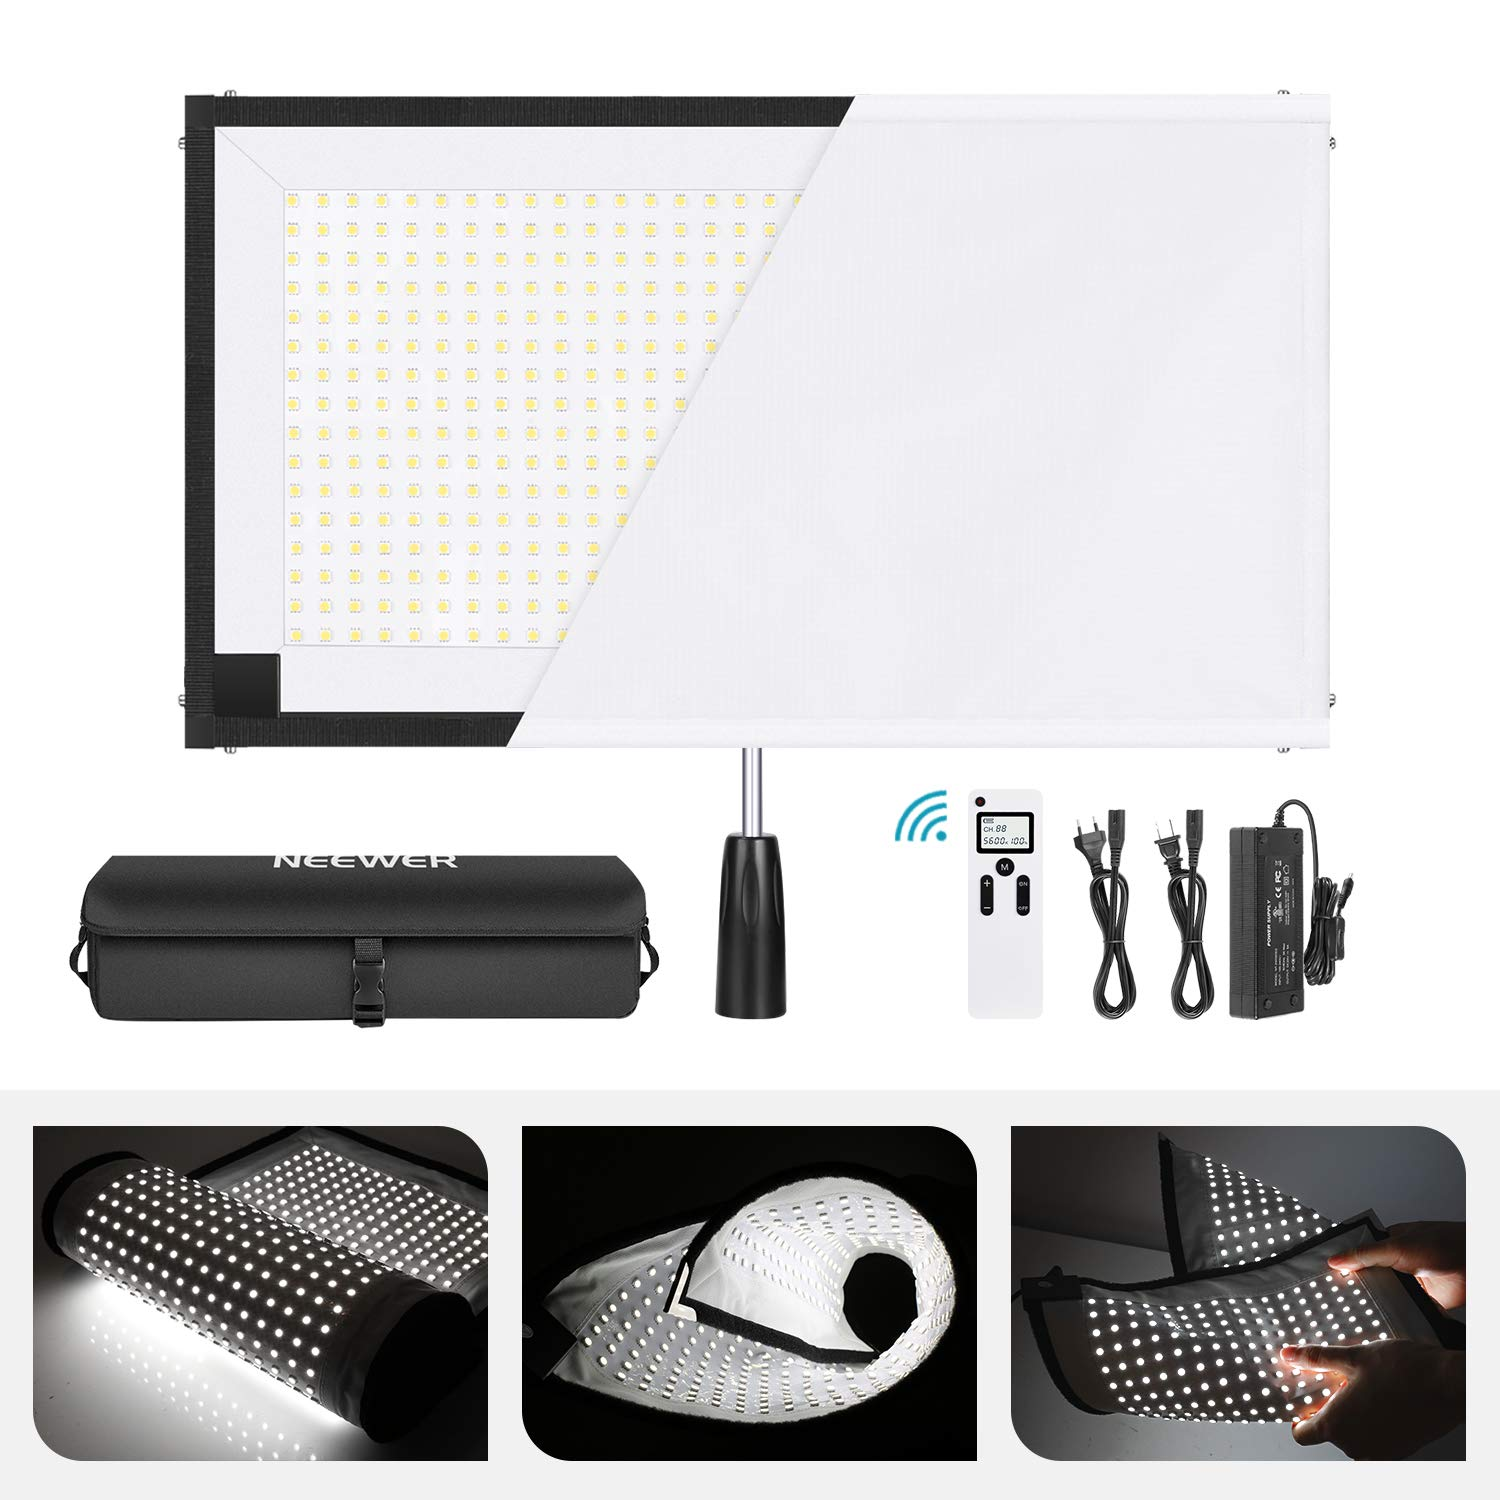 Neewer Rollable 30x53cm Flexible LED Light Panel Mat on Fabric 48W 5600K 512 LED Lighting Panel with Handle Grip, Remote Control, Diffuser Cloth, Carry Bag for Traveling Filmmakers Outdoor Photography by Neewer